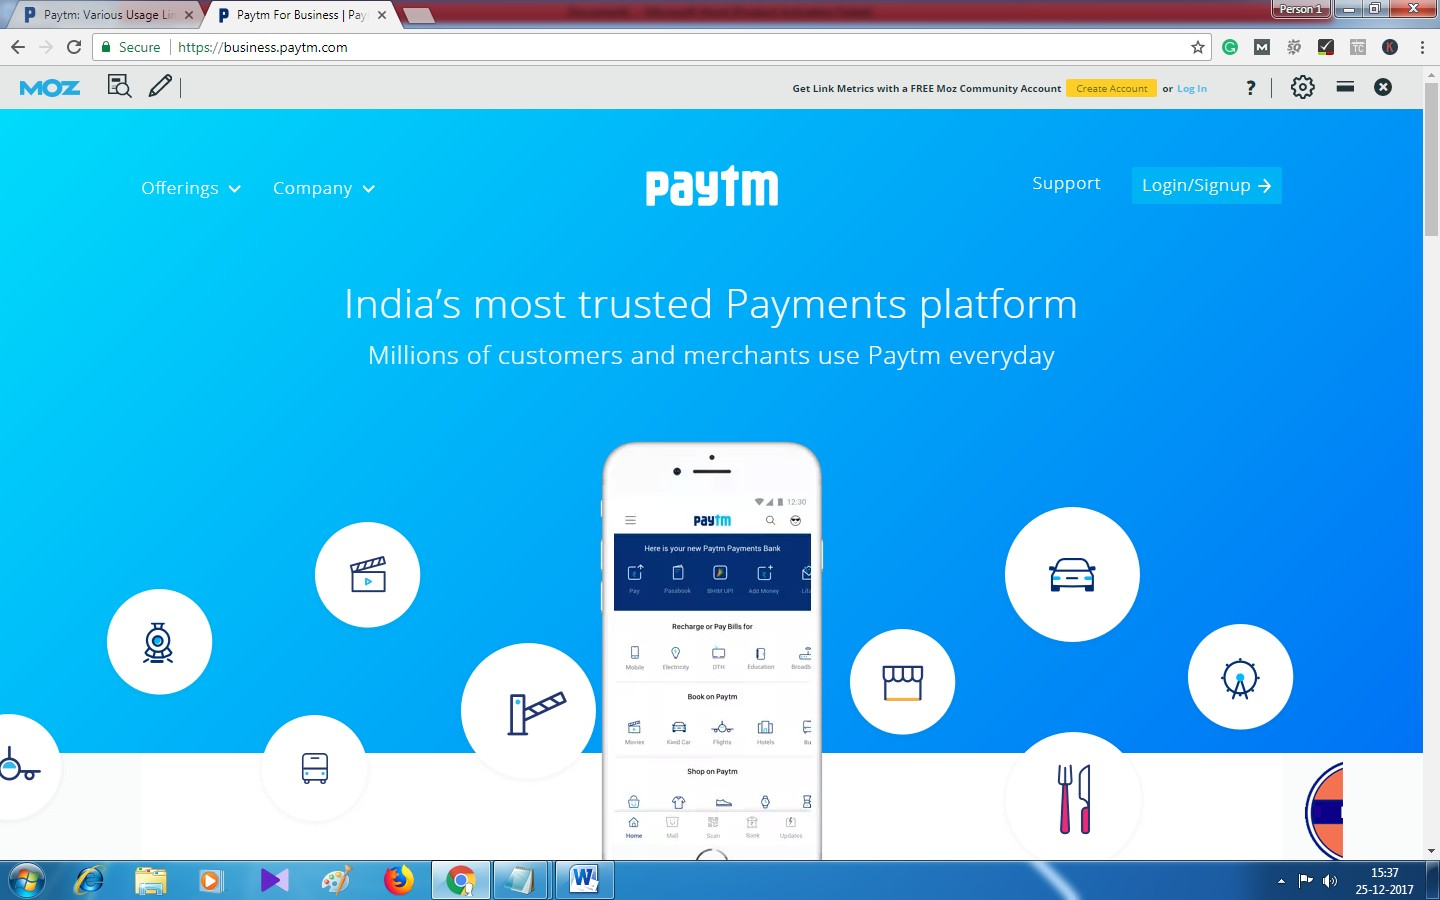 paytm to bank transfer